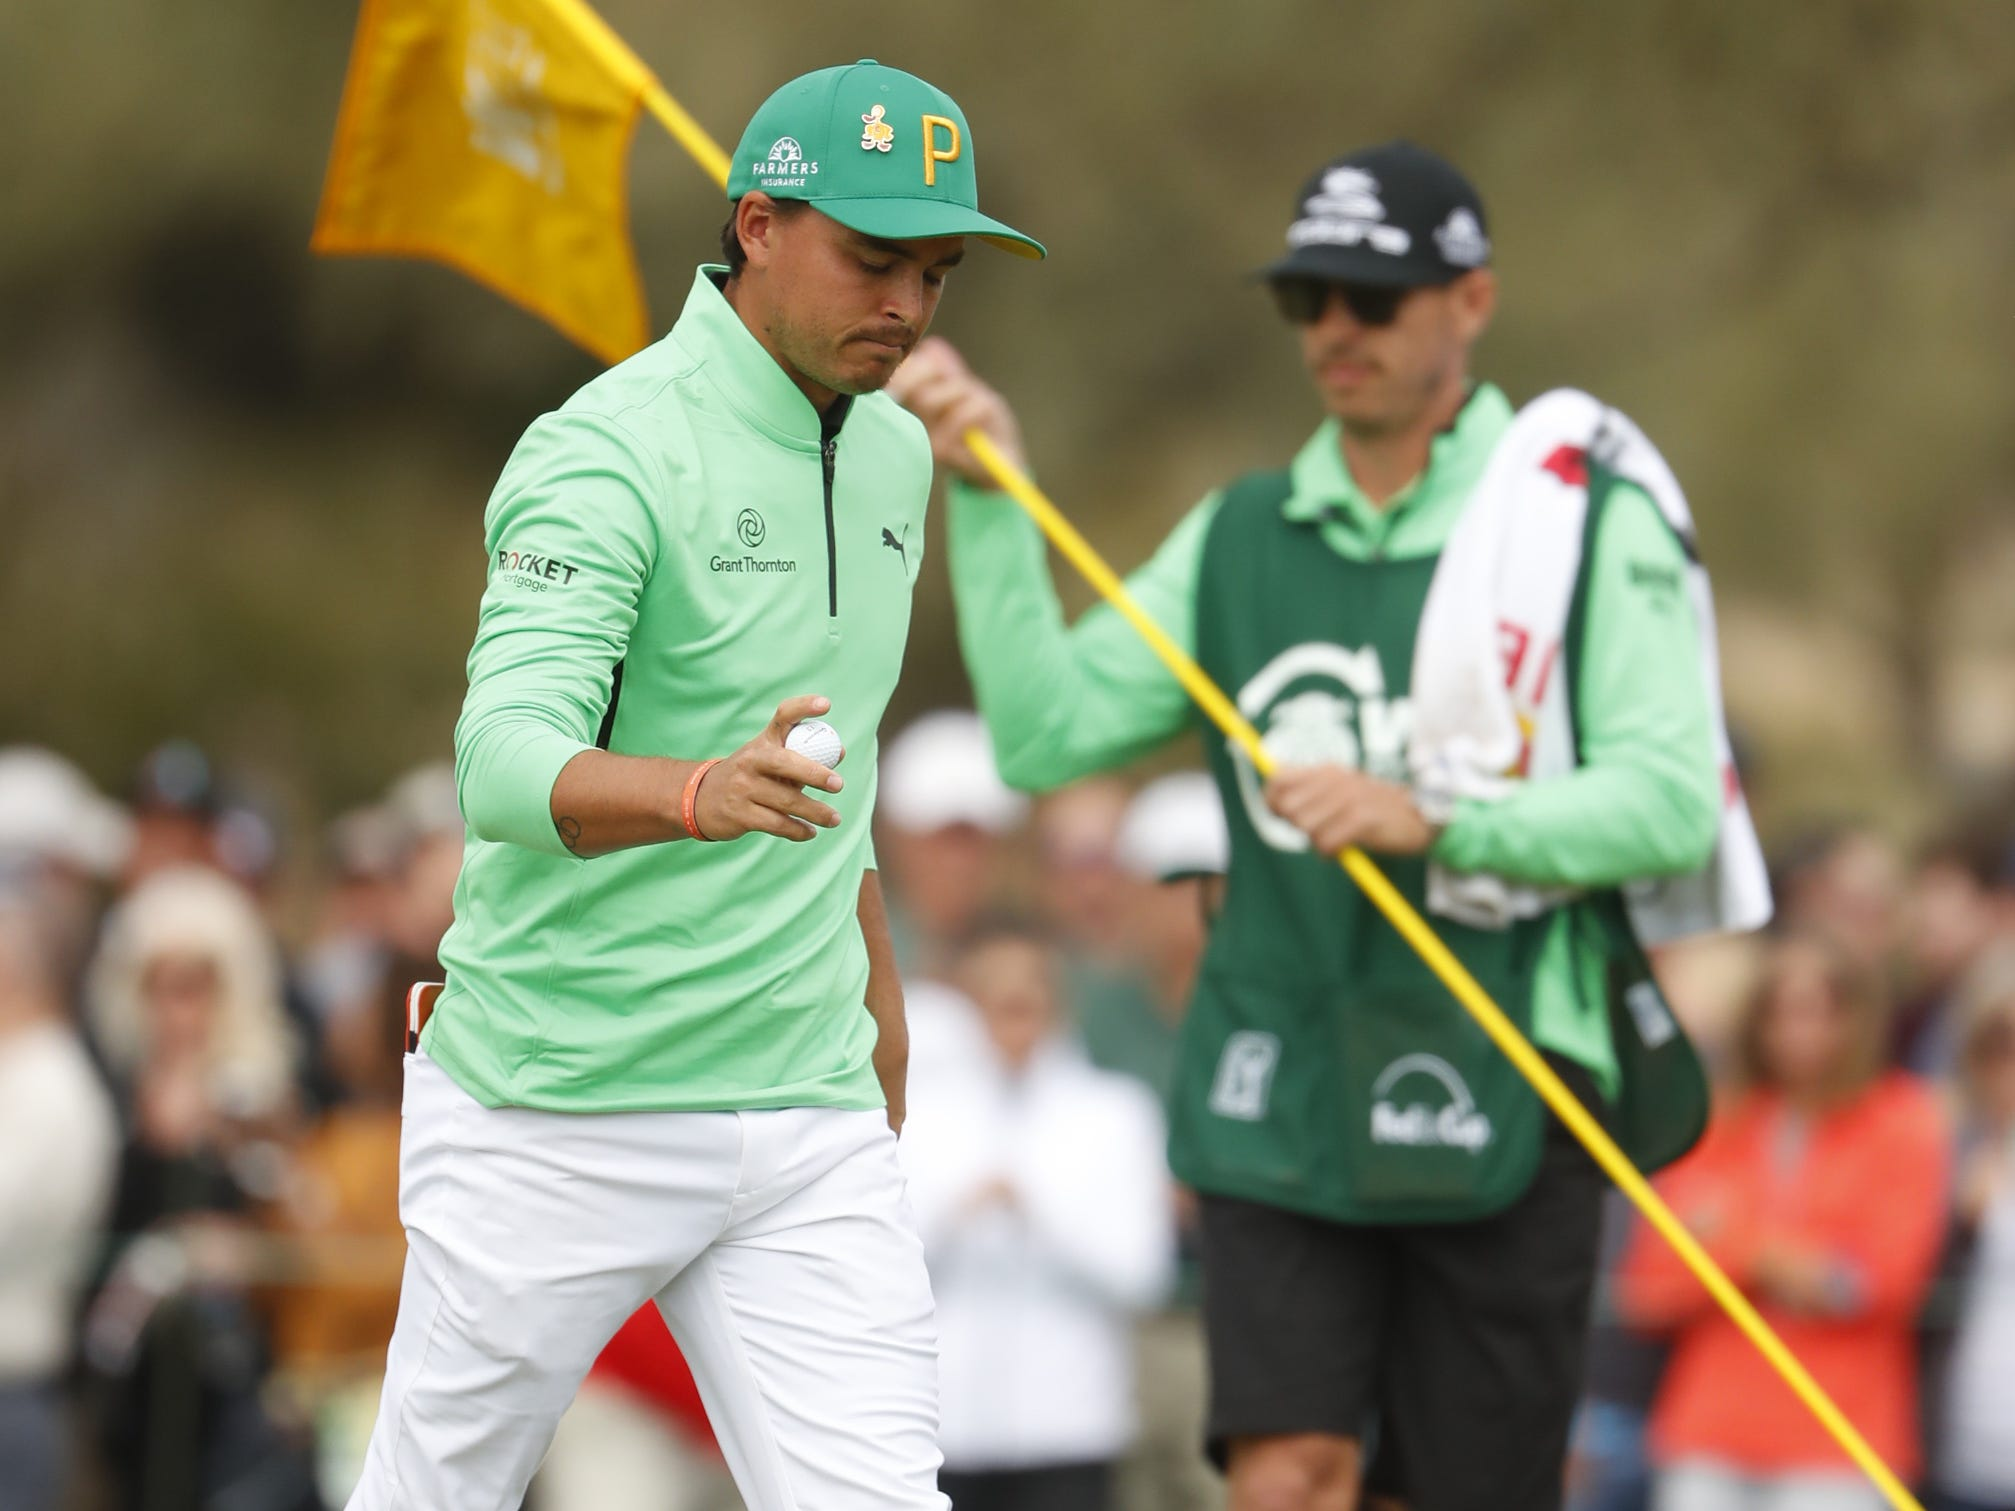 Rickie Fowler makes a putt on the 9th hole during the third round of the Waste Management Phoenix Open at TPC Scottsdale in Scottsdale, Ariz. on February 2, 2019.